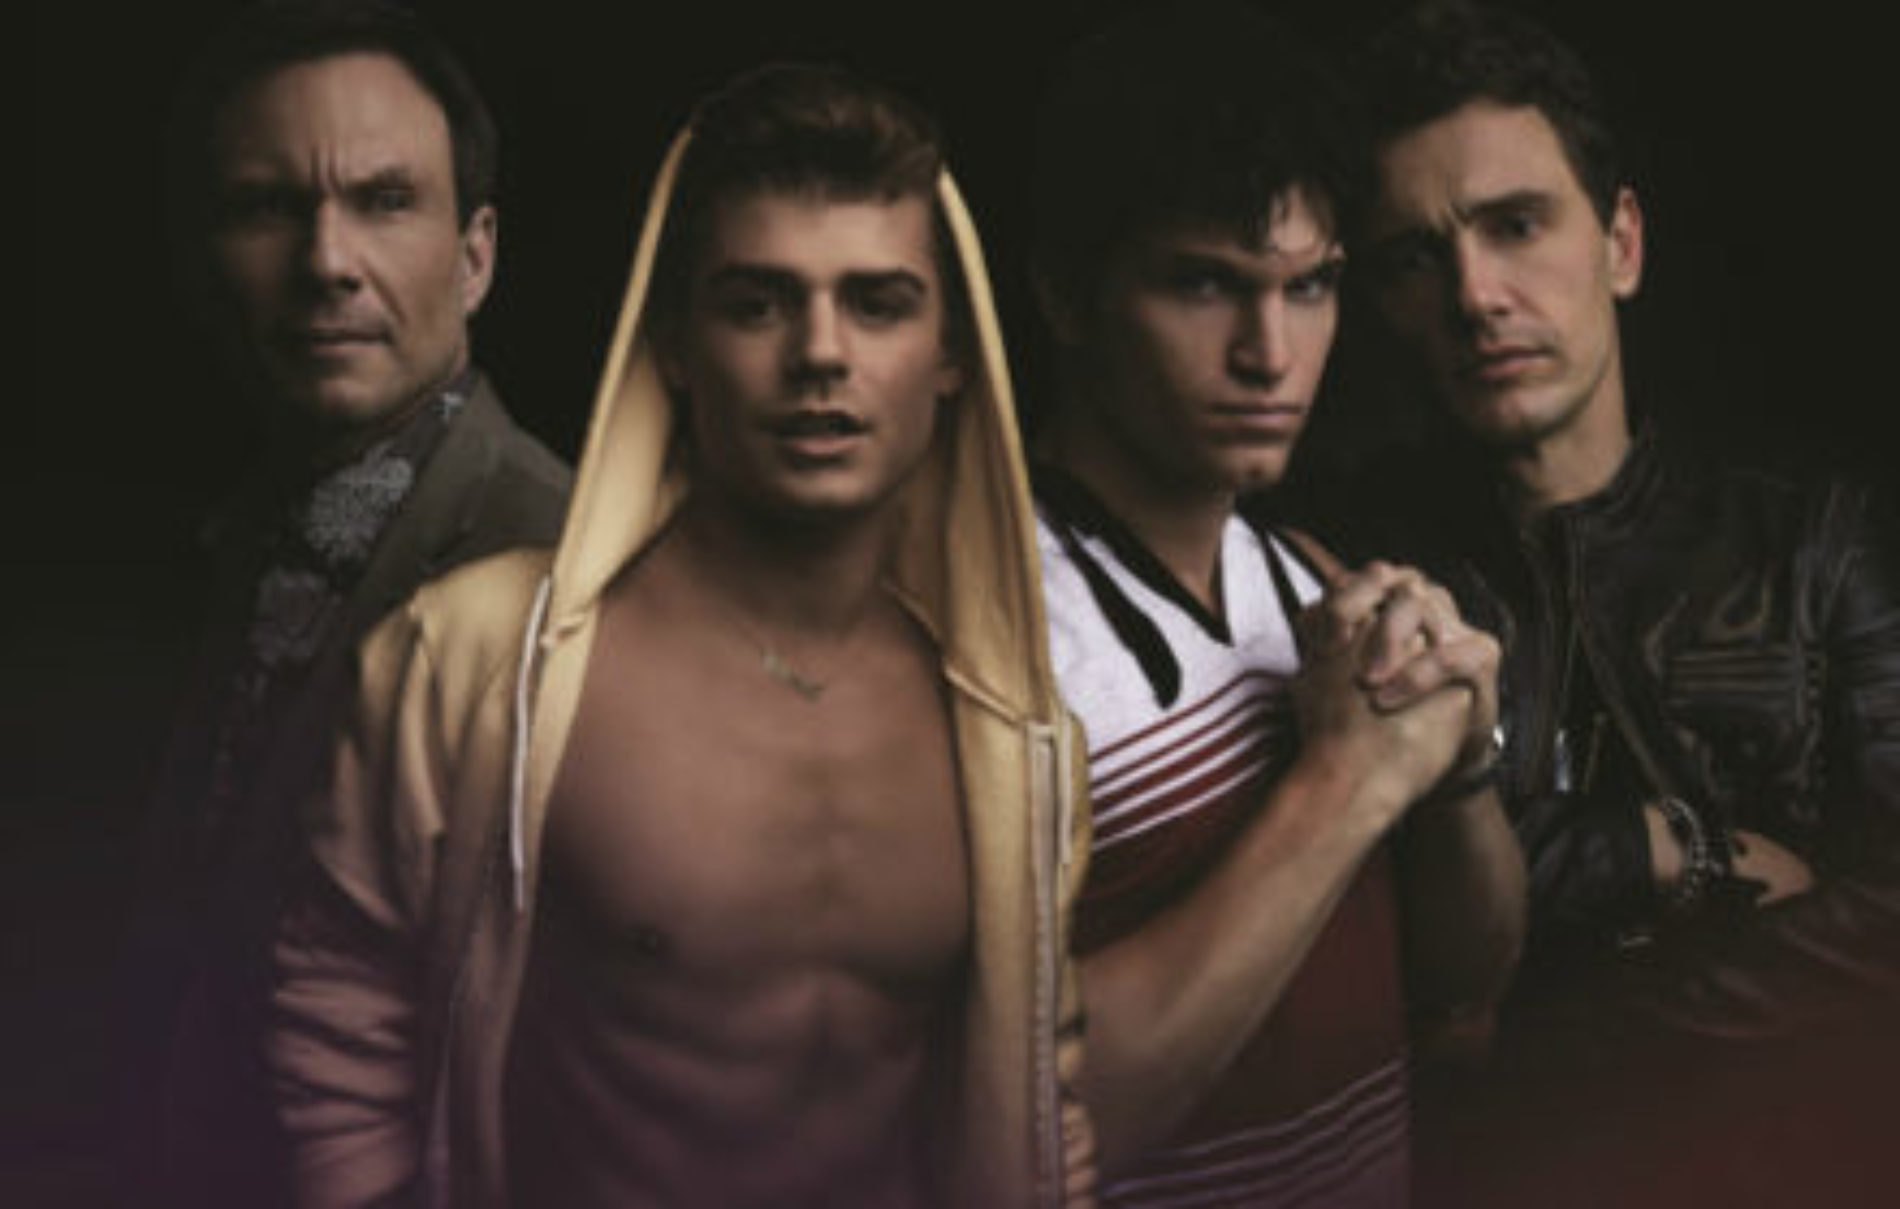 Brent Corrigan Thinks James Franco's 'King Cobra' Demonstrates Contempt For Queer Culture